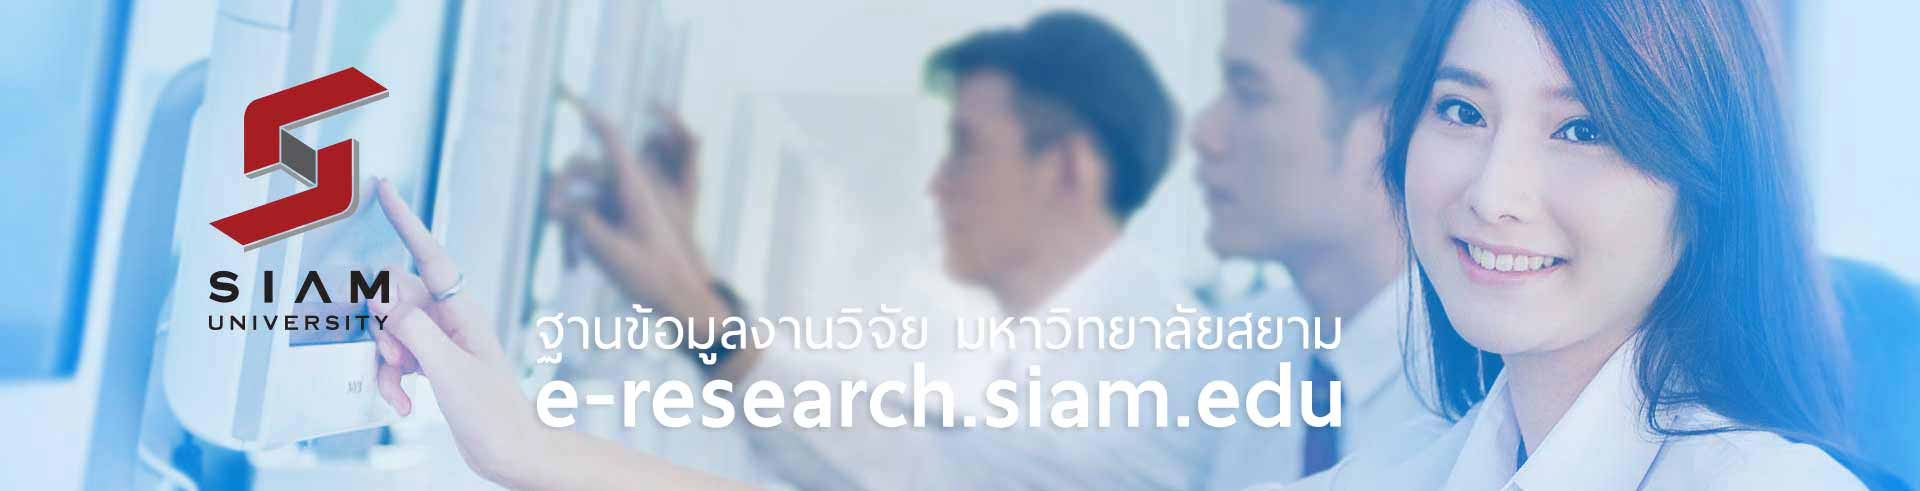 Factors influencing the adoption of technologies in the insurance industry: A Thanachart insurance study - ฐานข้อมูลงานวิจัย มหาวิทยาลัยสยาม